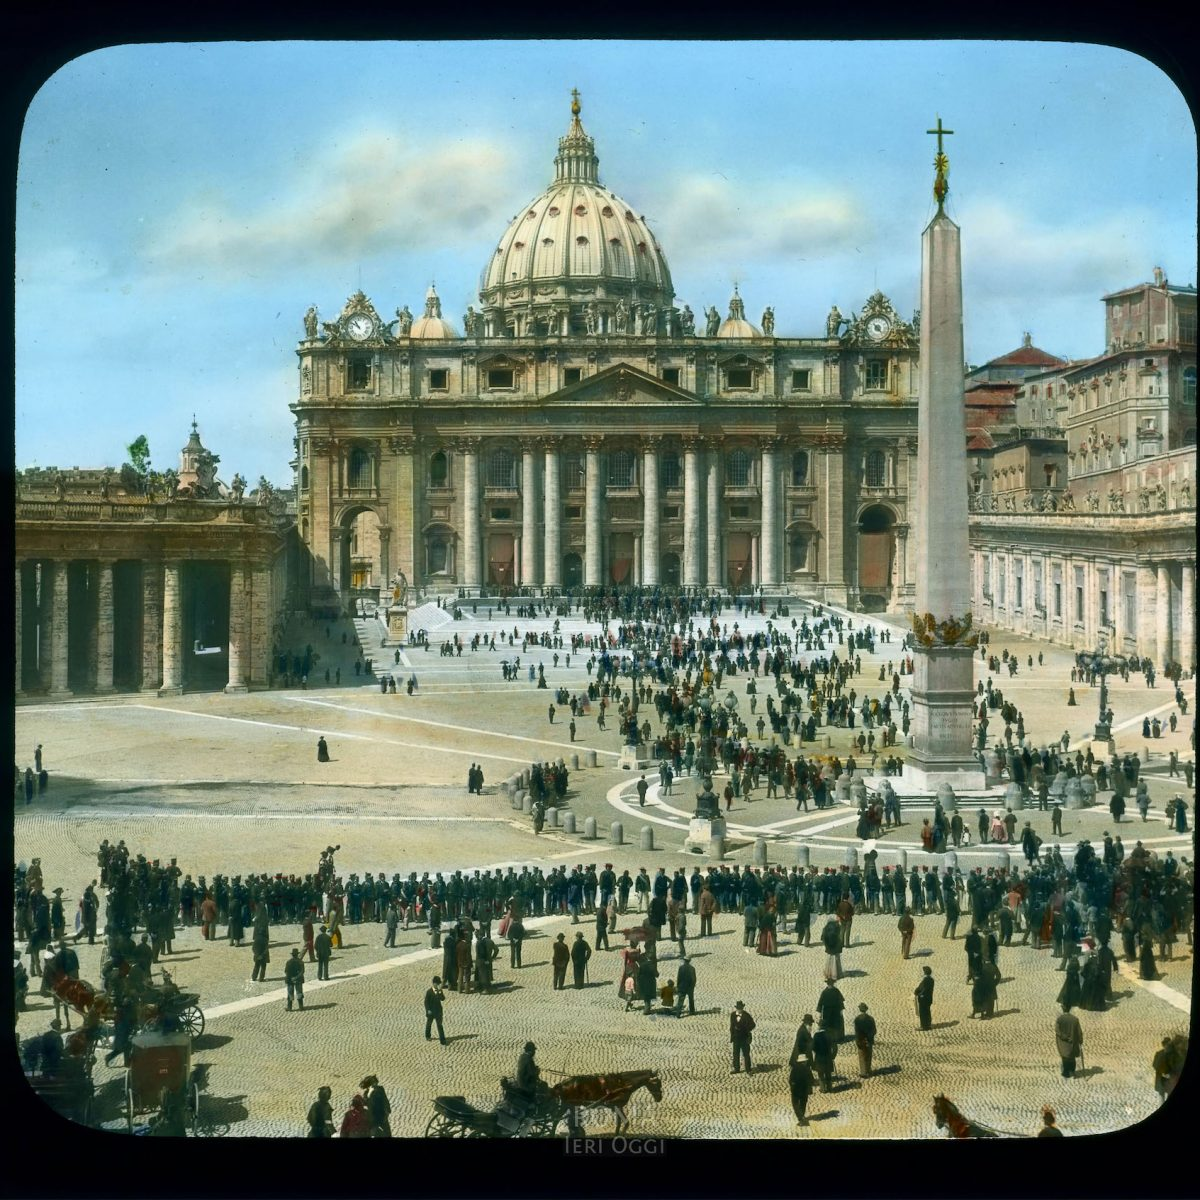 Vatican City. St. Peter's Square: view of square with crowds of people View in tinted lantern slide, ca. 1919-1938. The square was built 1656-1667.